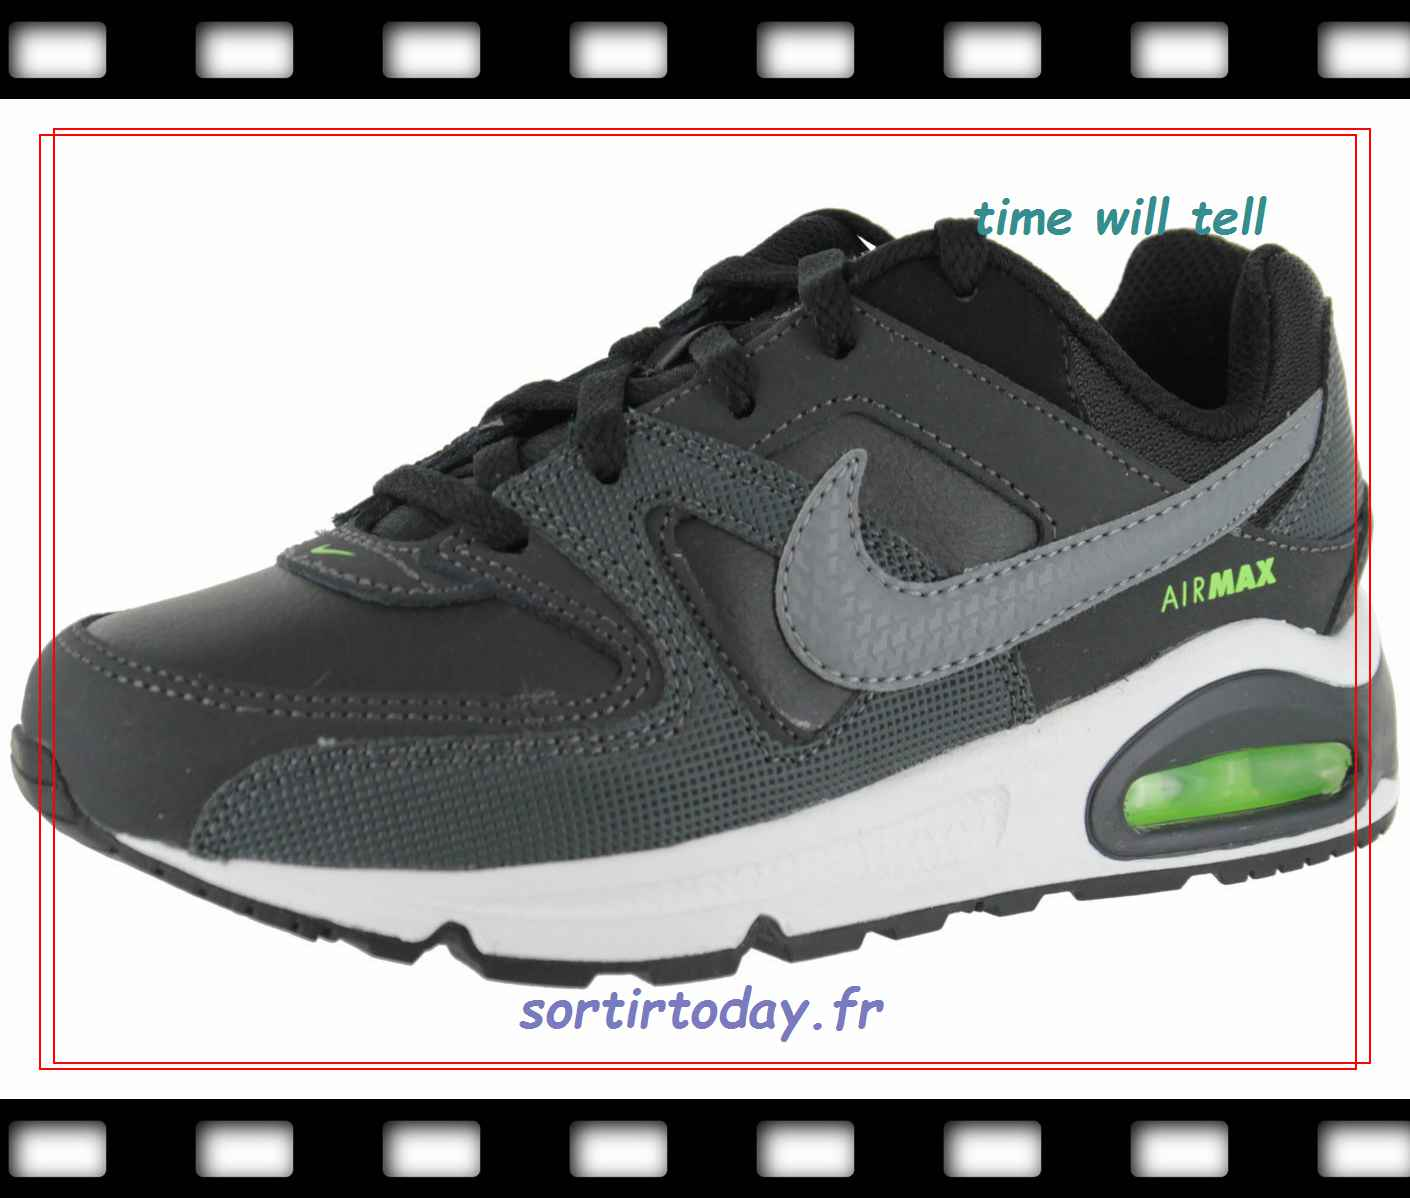 Vente lot de air max pas cher destockage 1864